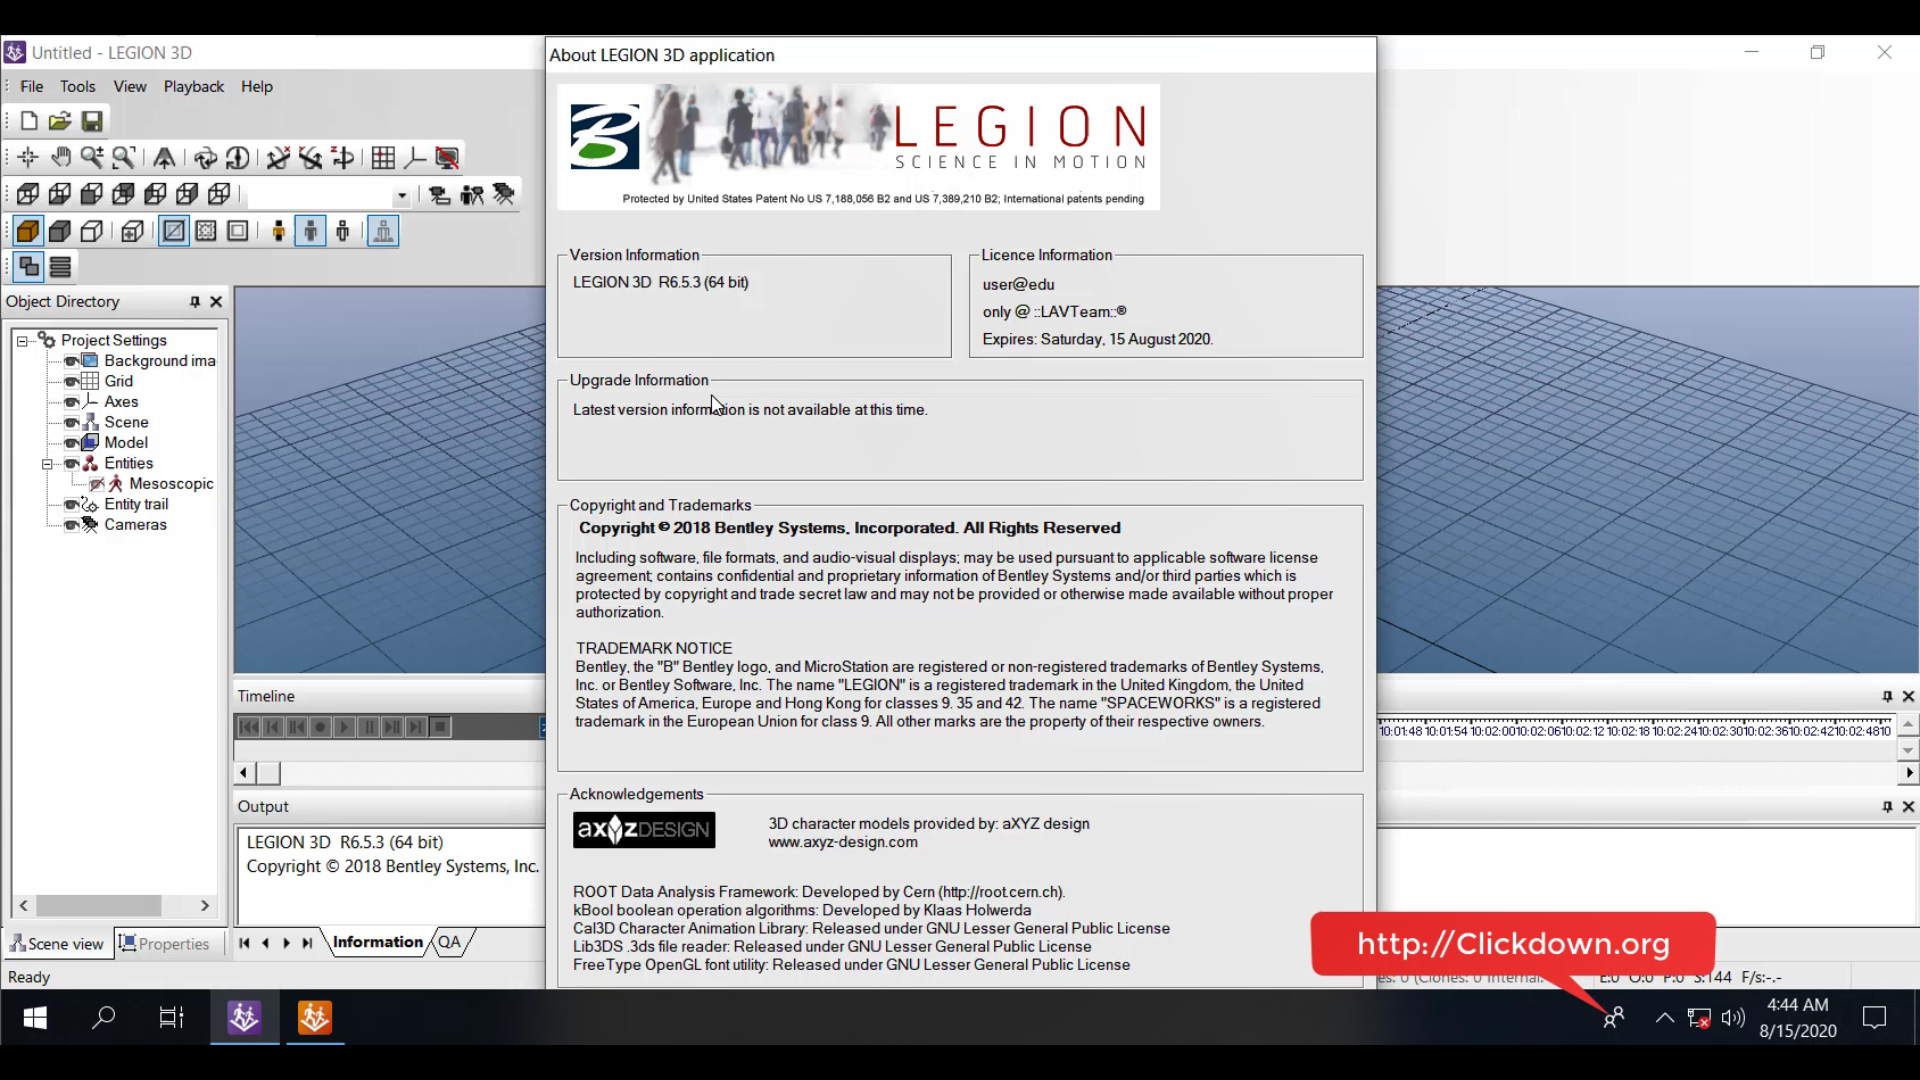 Working with Bentley LEGION R6.5.3 full license